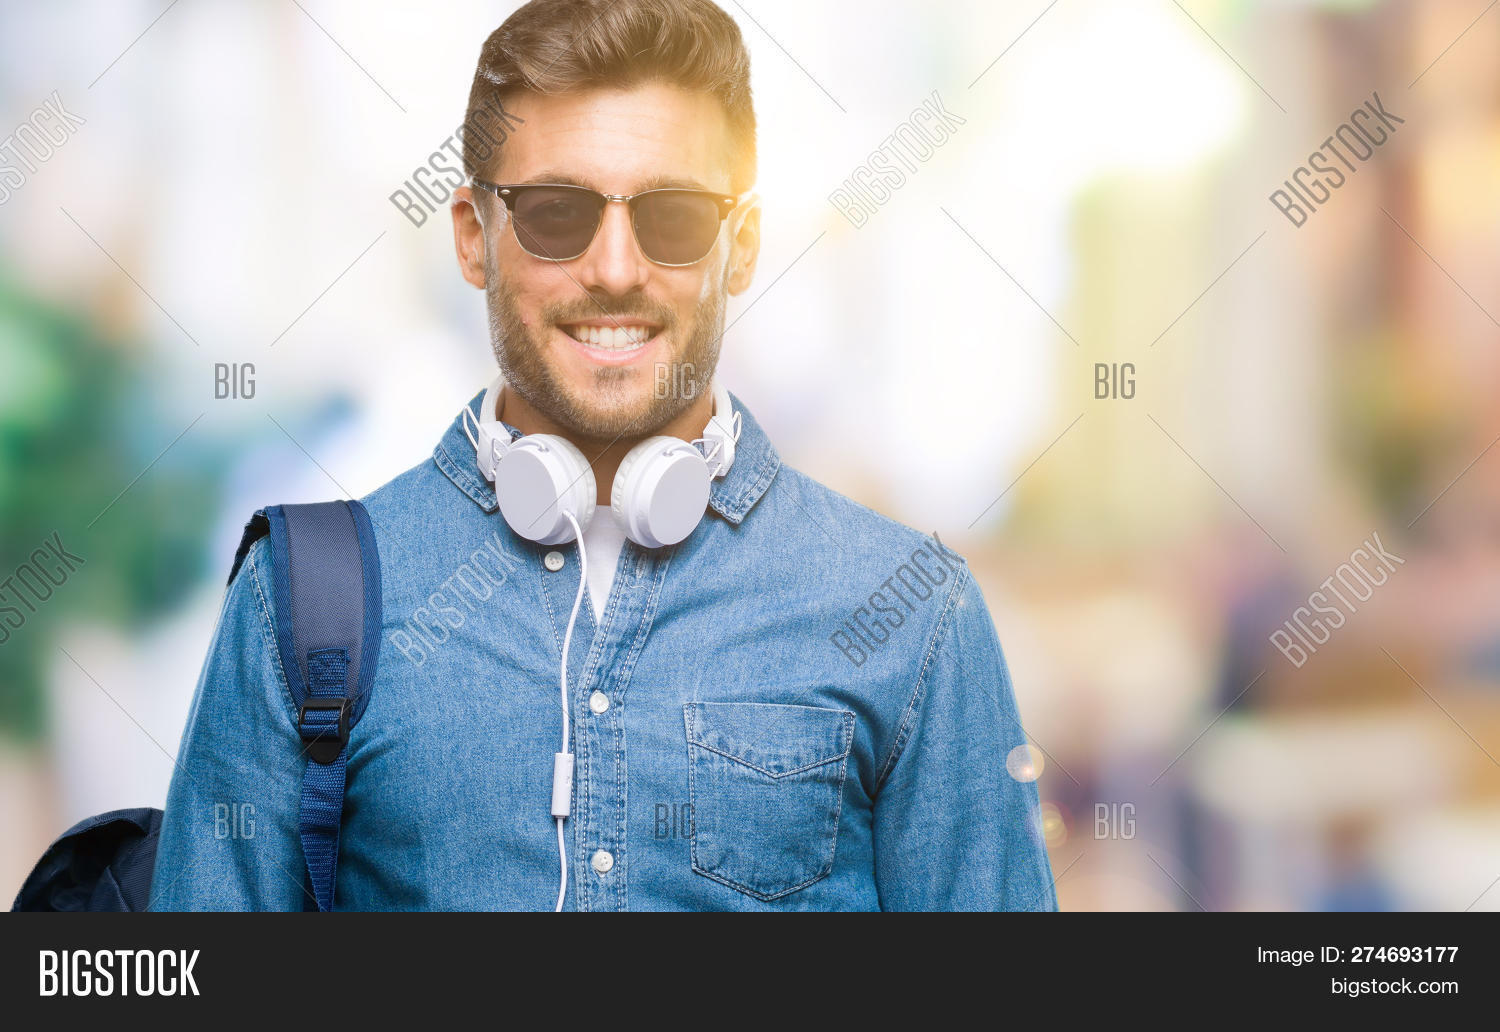 Young Handsome Tourist Image Photo Free Trial Bigstock